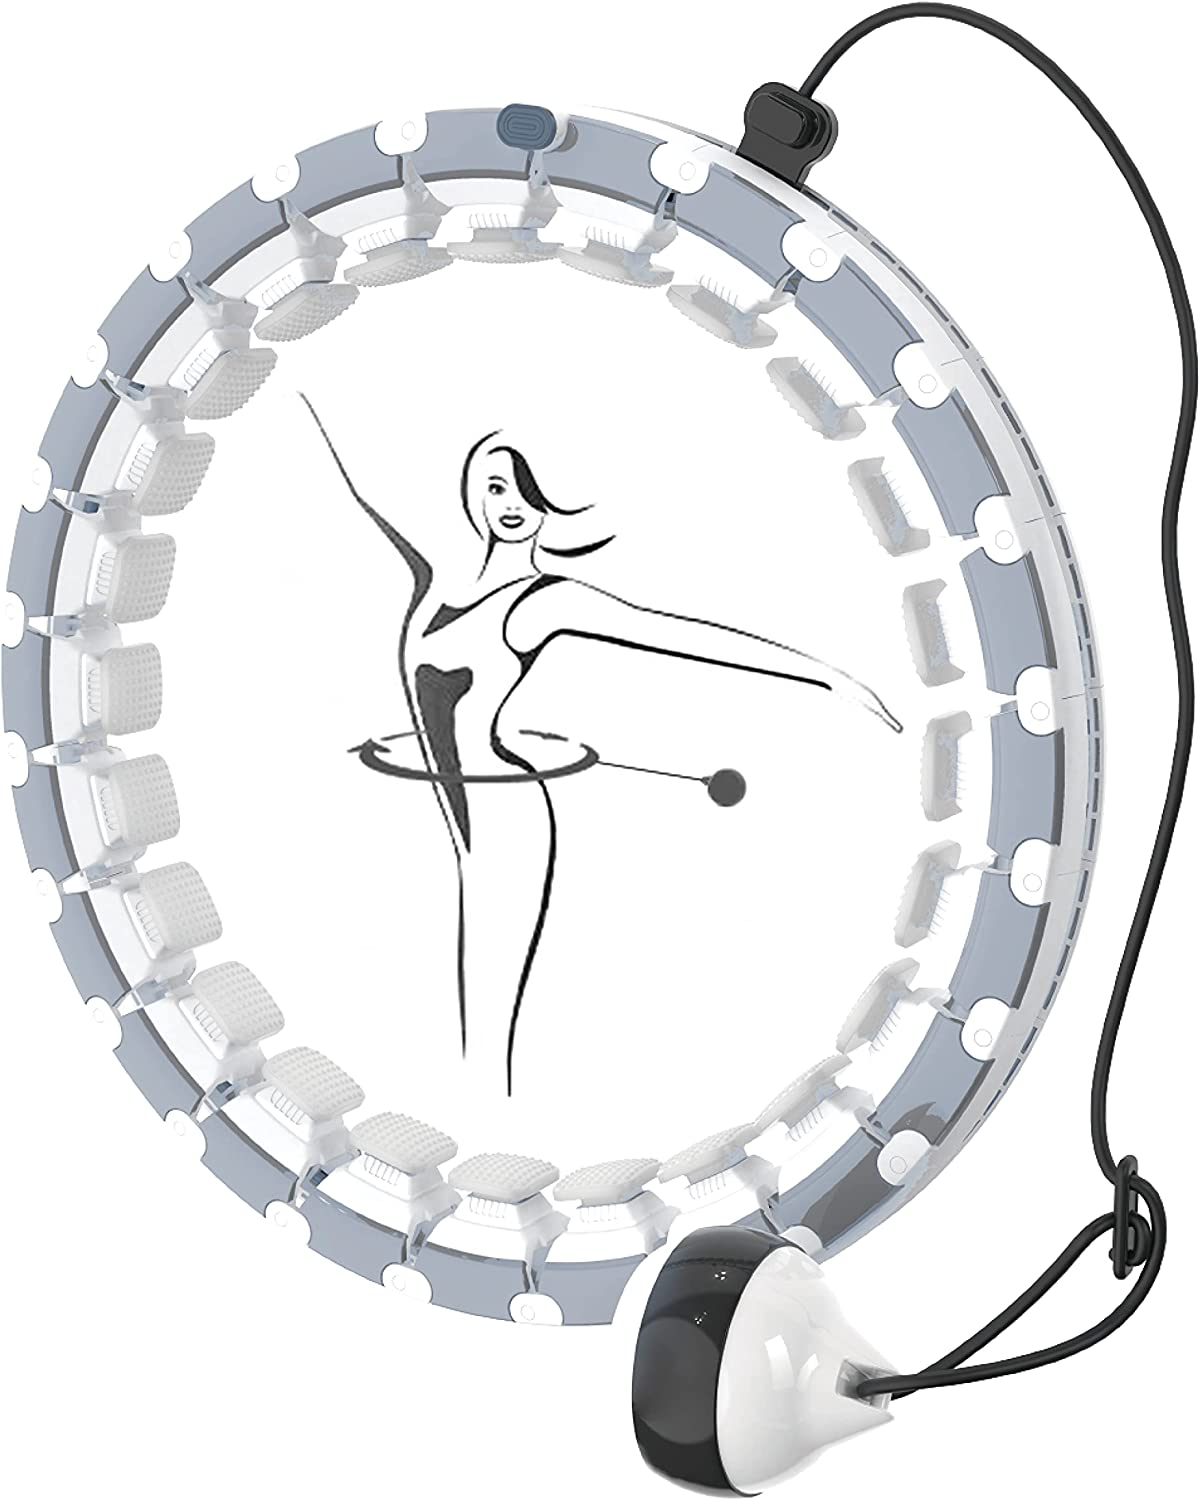 BALAN-O Smart Weighted Max Limited time trial price 77% OFF Hoola Fitness Hoop Adjustable Size with